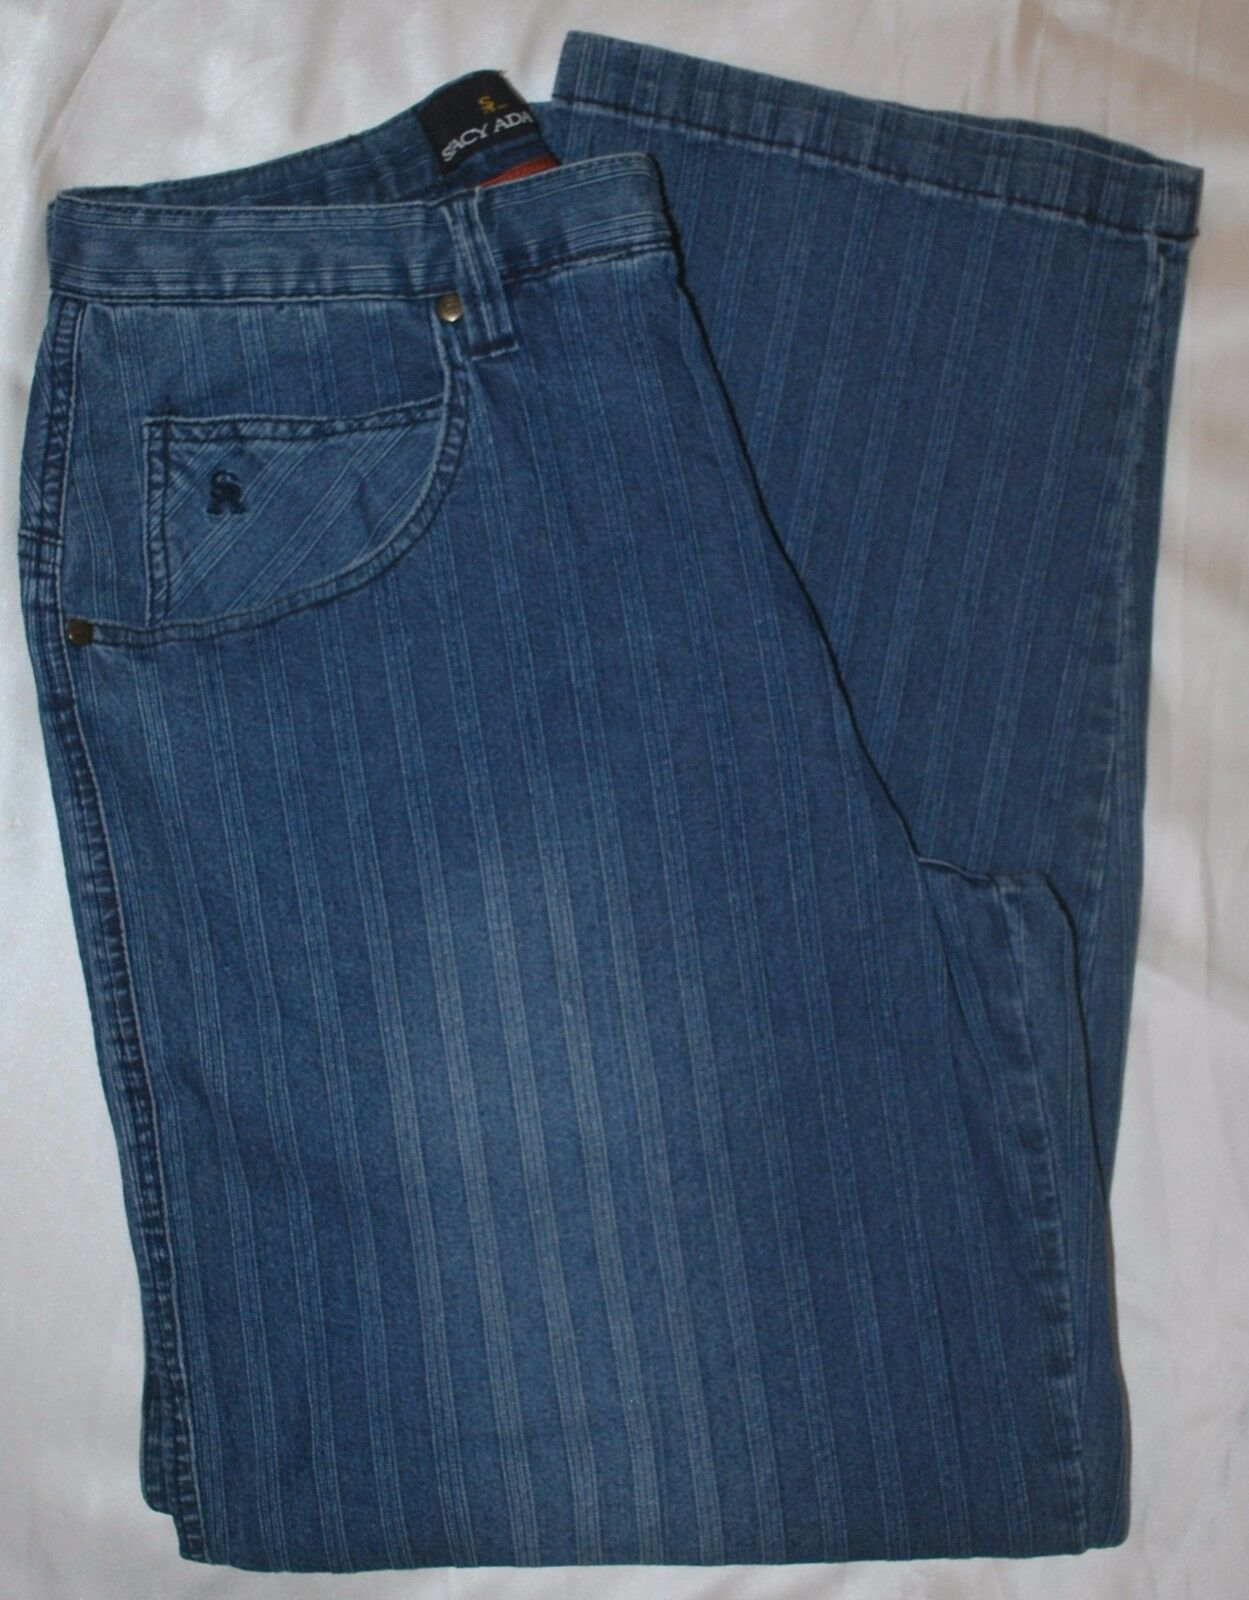 STACY ADAMS Men's Jeans - W32 x L29